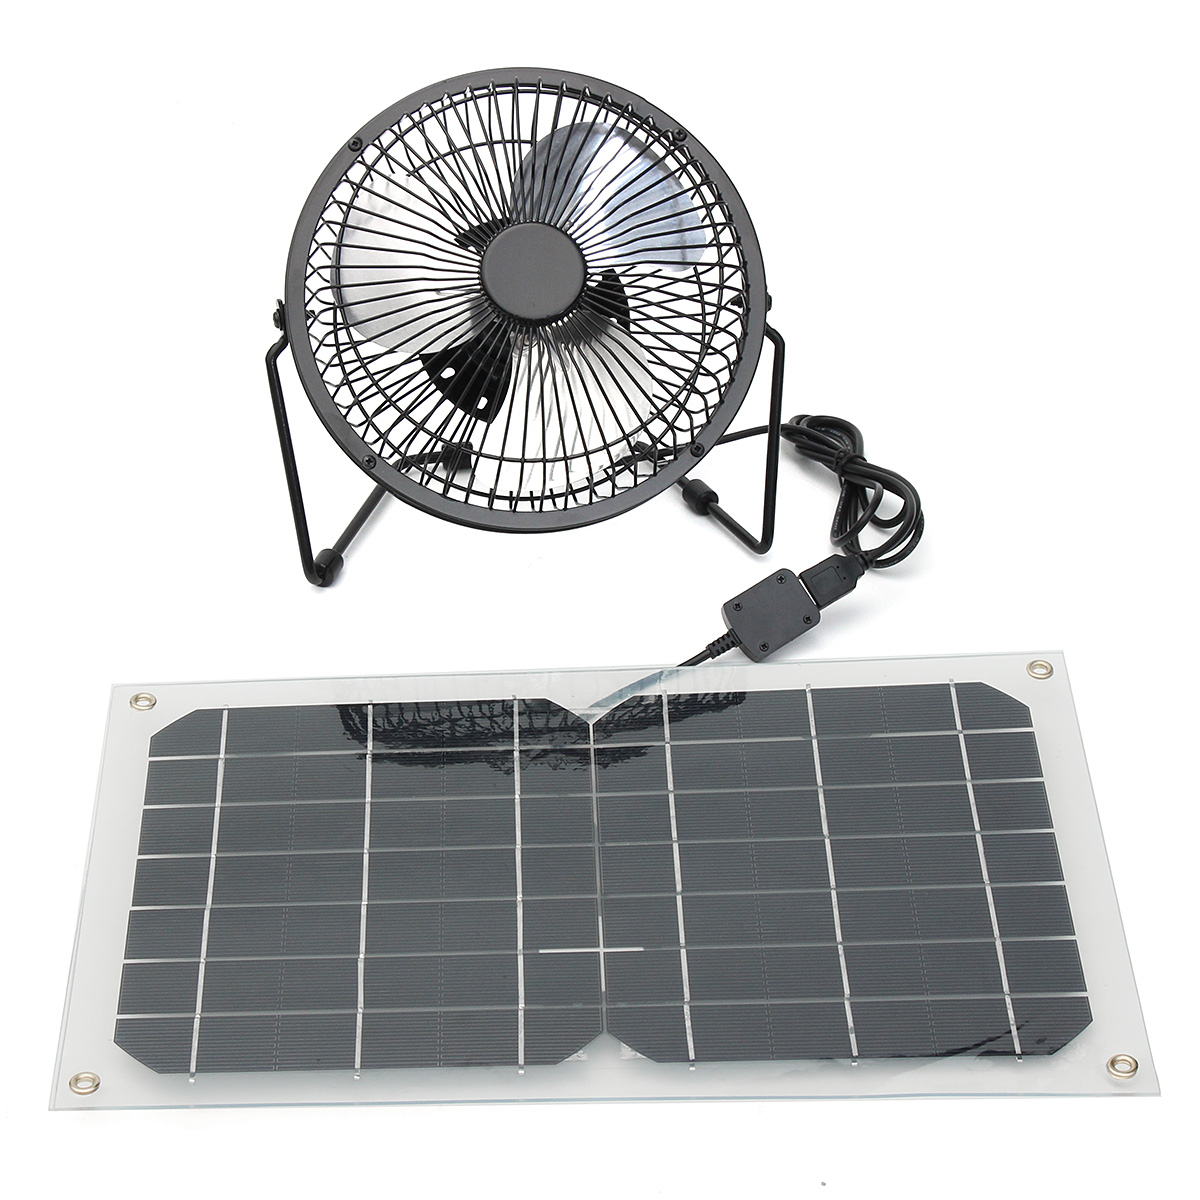 6 inch Black Solar Panel Powered USB 10W Fan Cooling Ventilation Car Cooling Fan for Outdoor Traveling Fishing Home Office